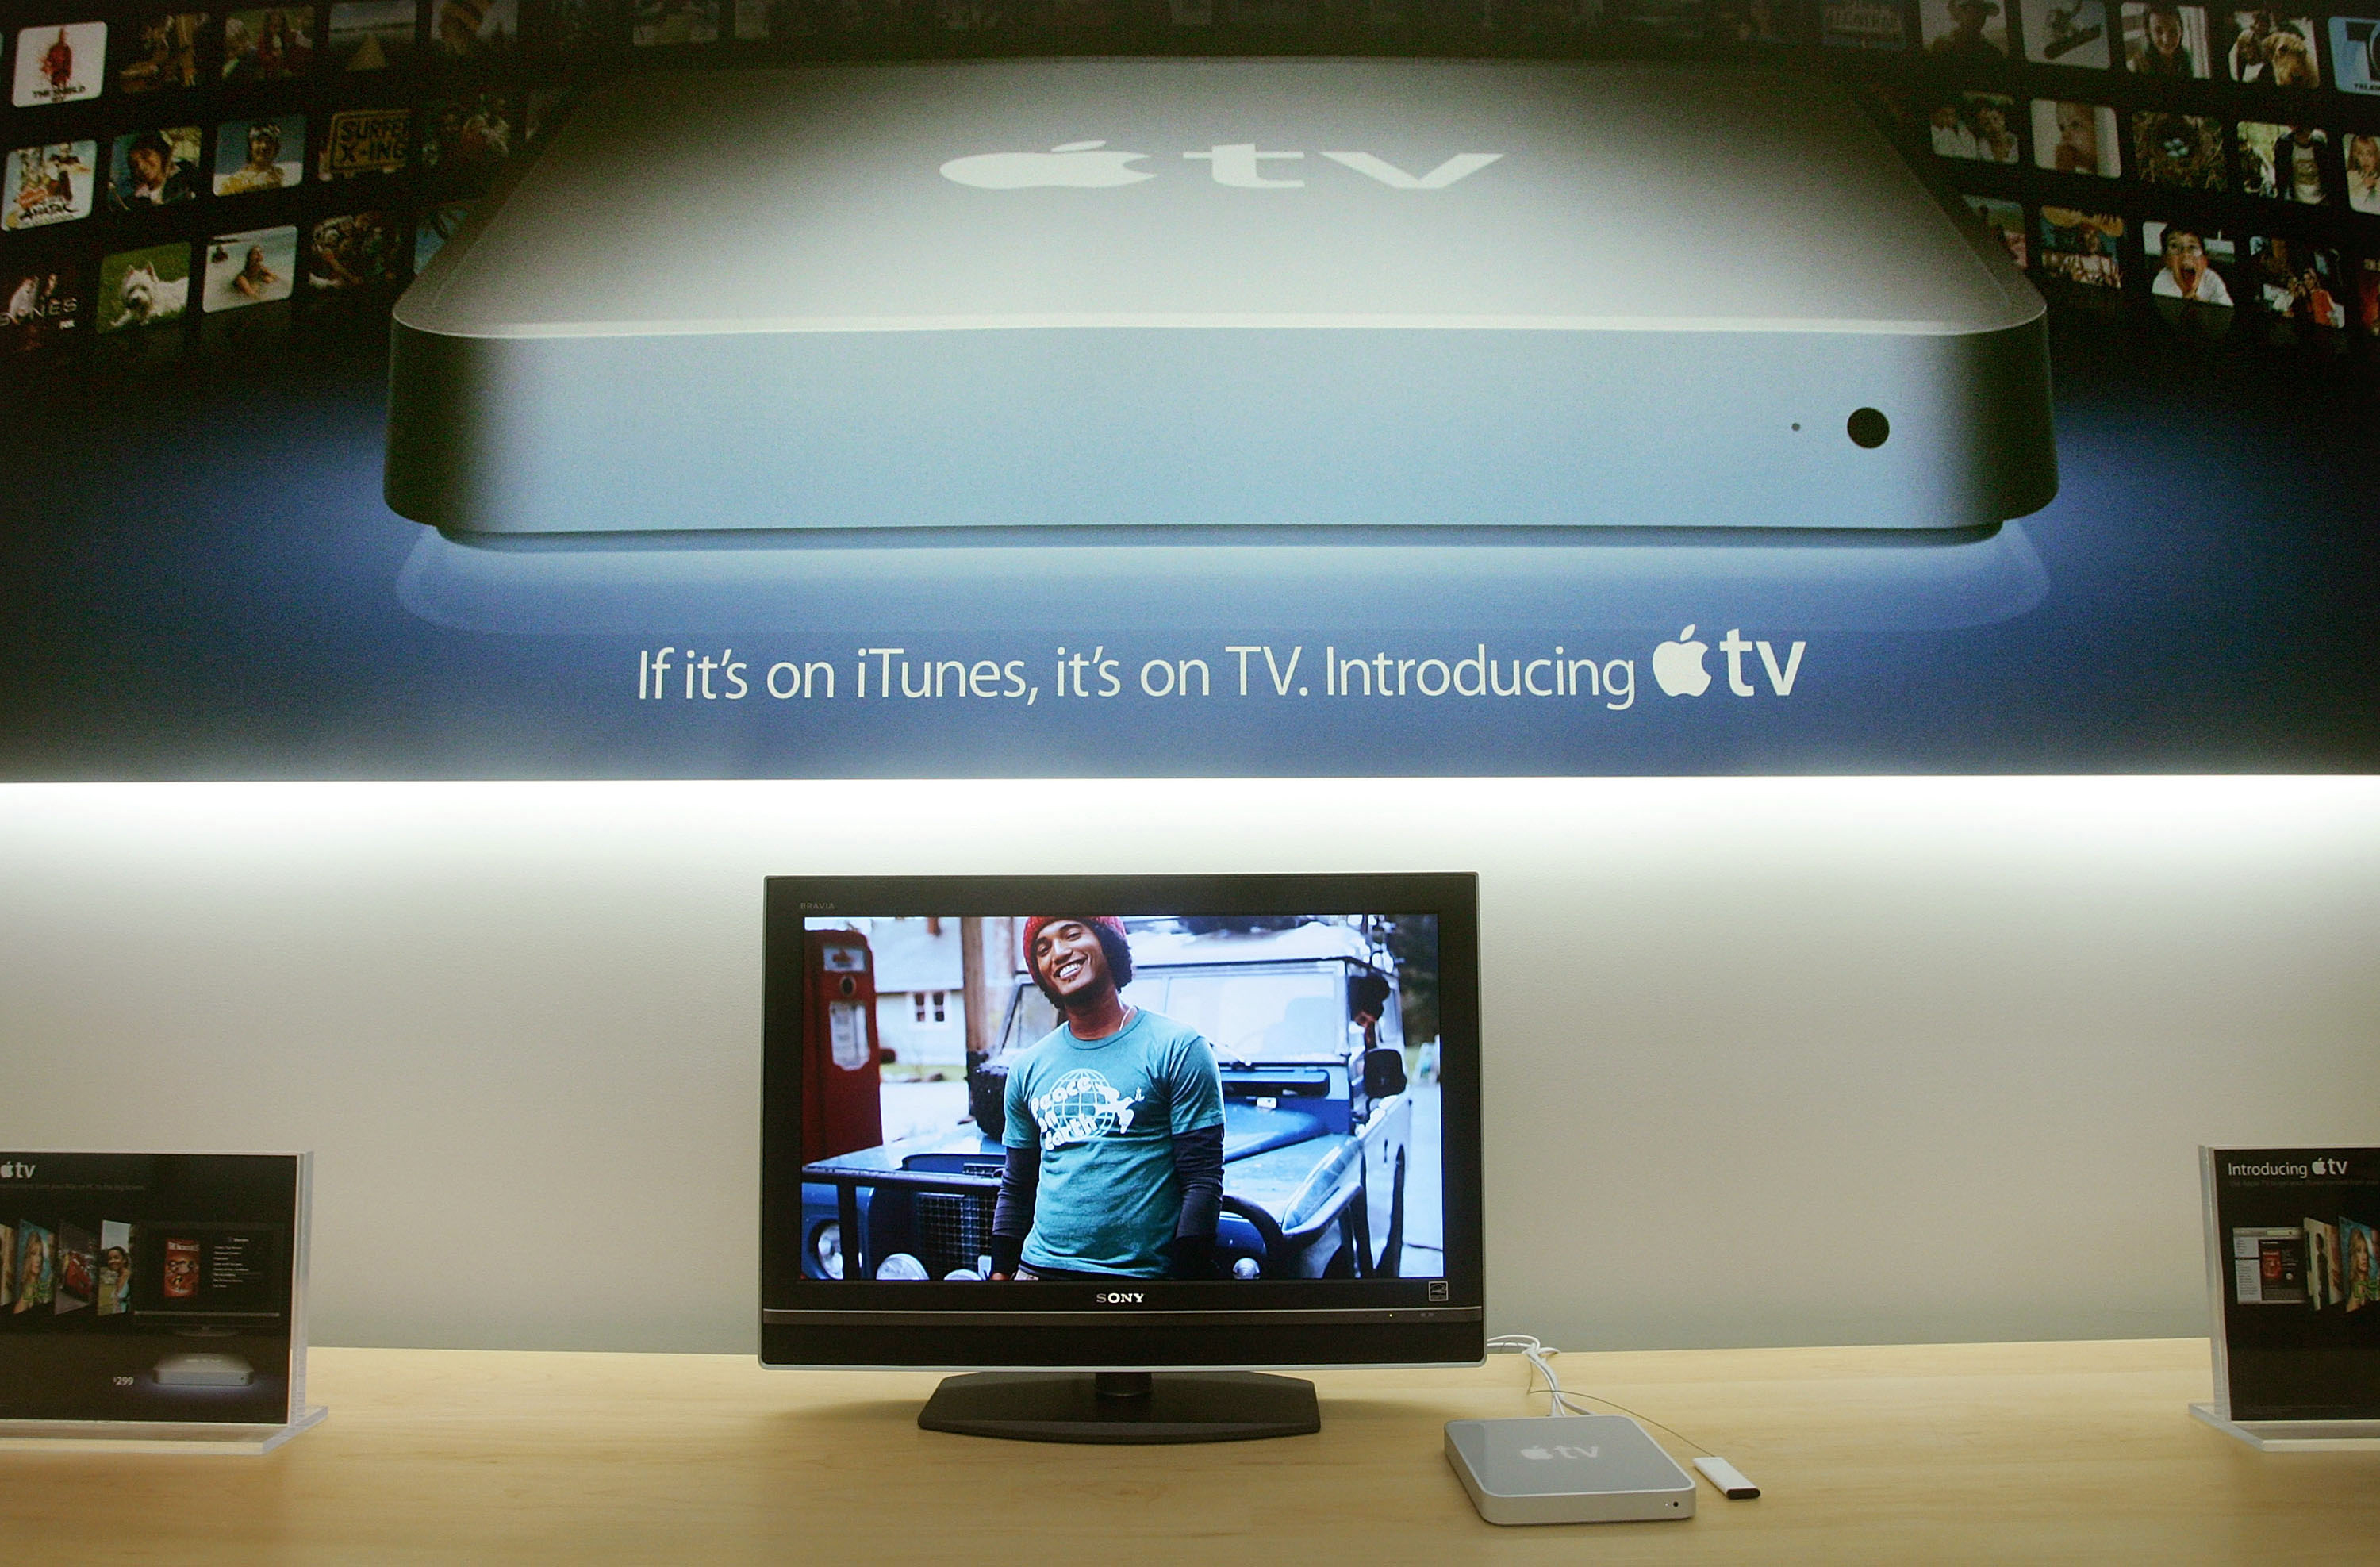 """Called a """"hobby"""" by Apple CEO Steve Jobs, the Apple TV appeared in stores on March 21, 2007. The device was priced at $299 and stored 50 hours of video."""